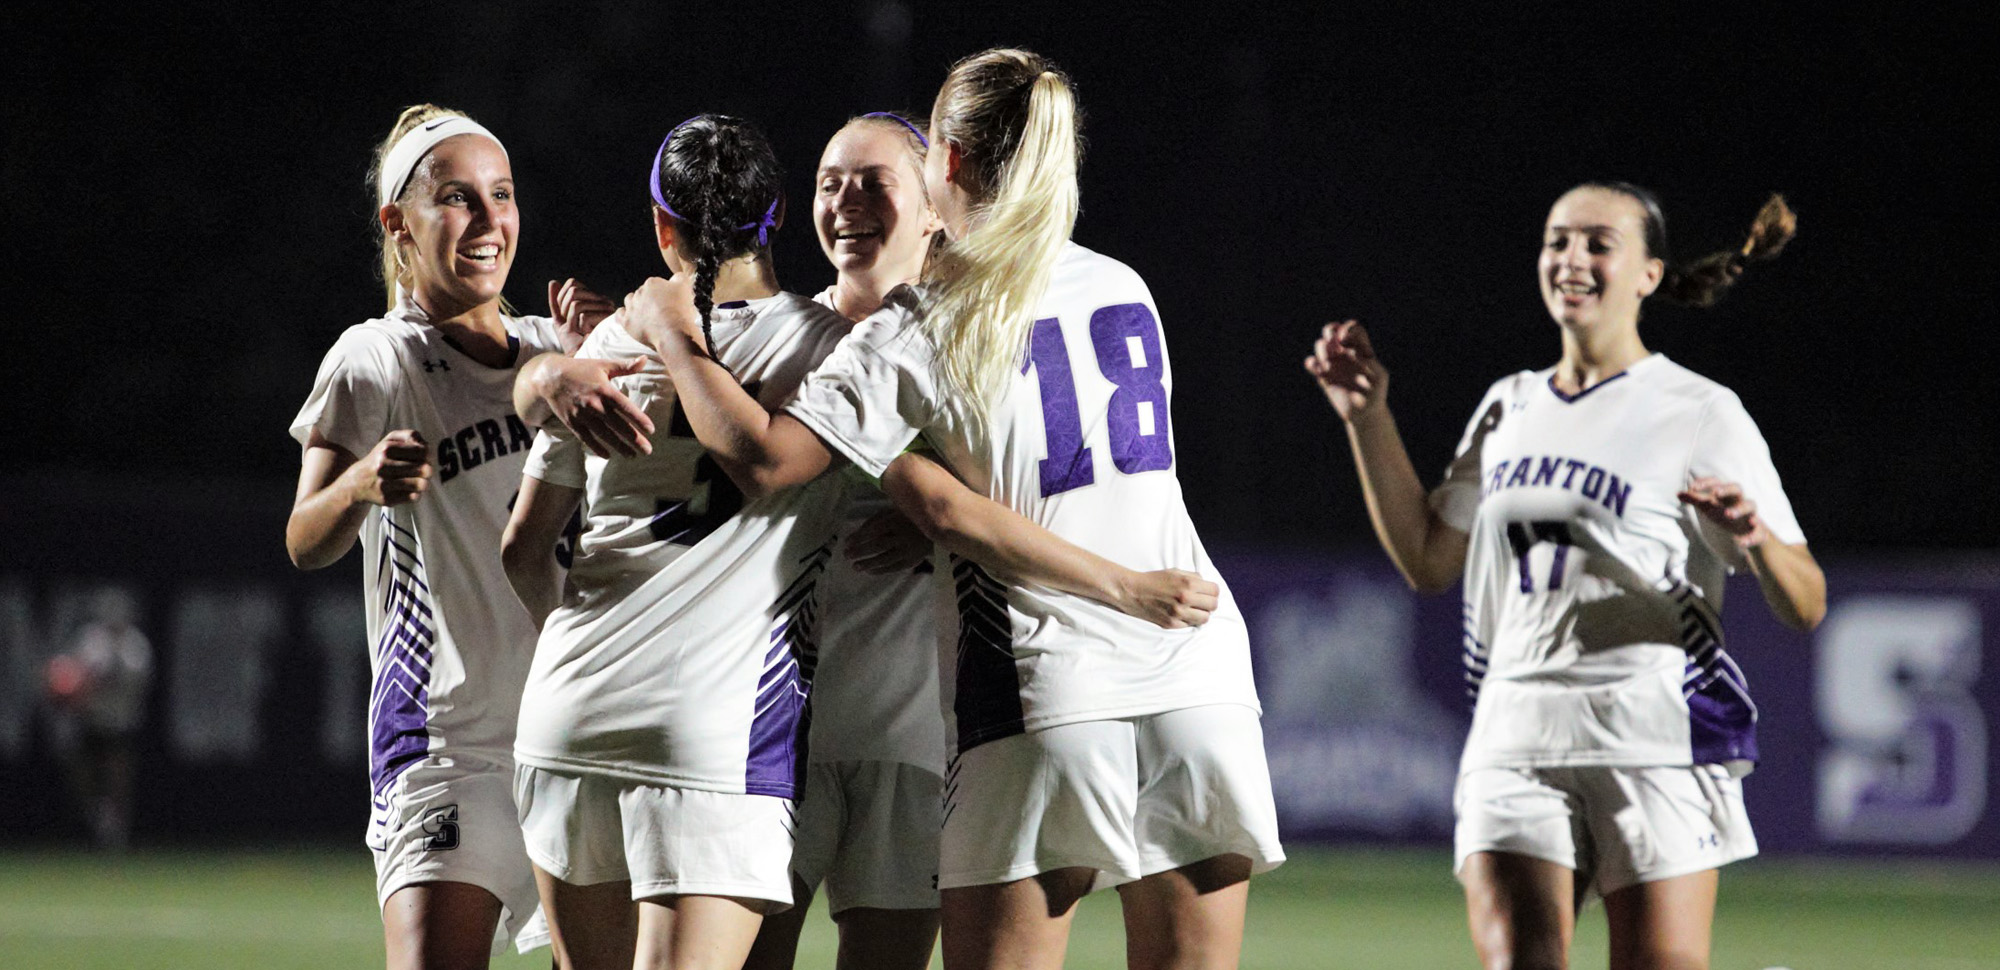 The women's soccer team is making its 18th NCAA Tournament appearance this weekend.